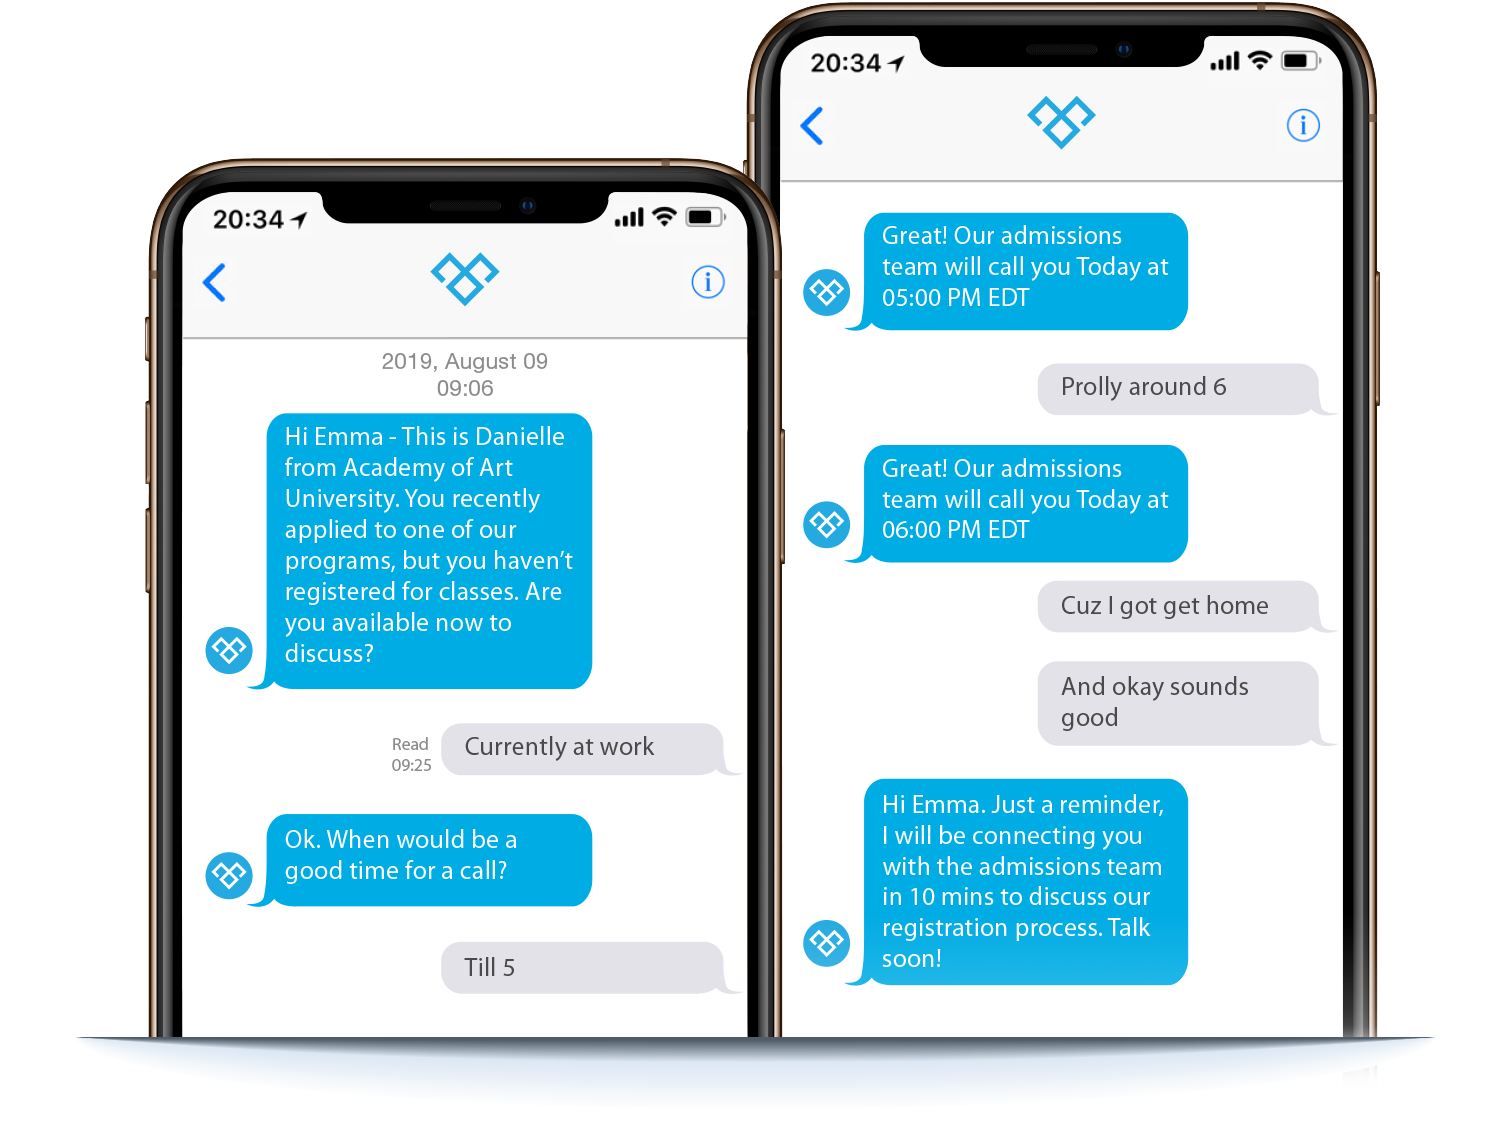 Image showing sales enquiry using Meera conversation AI on mobile phone